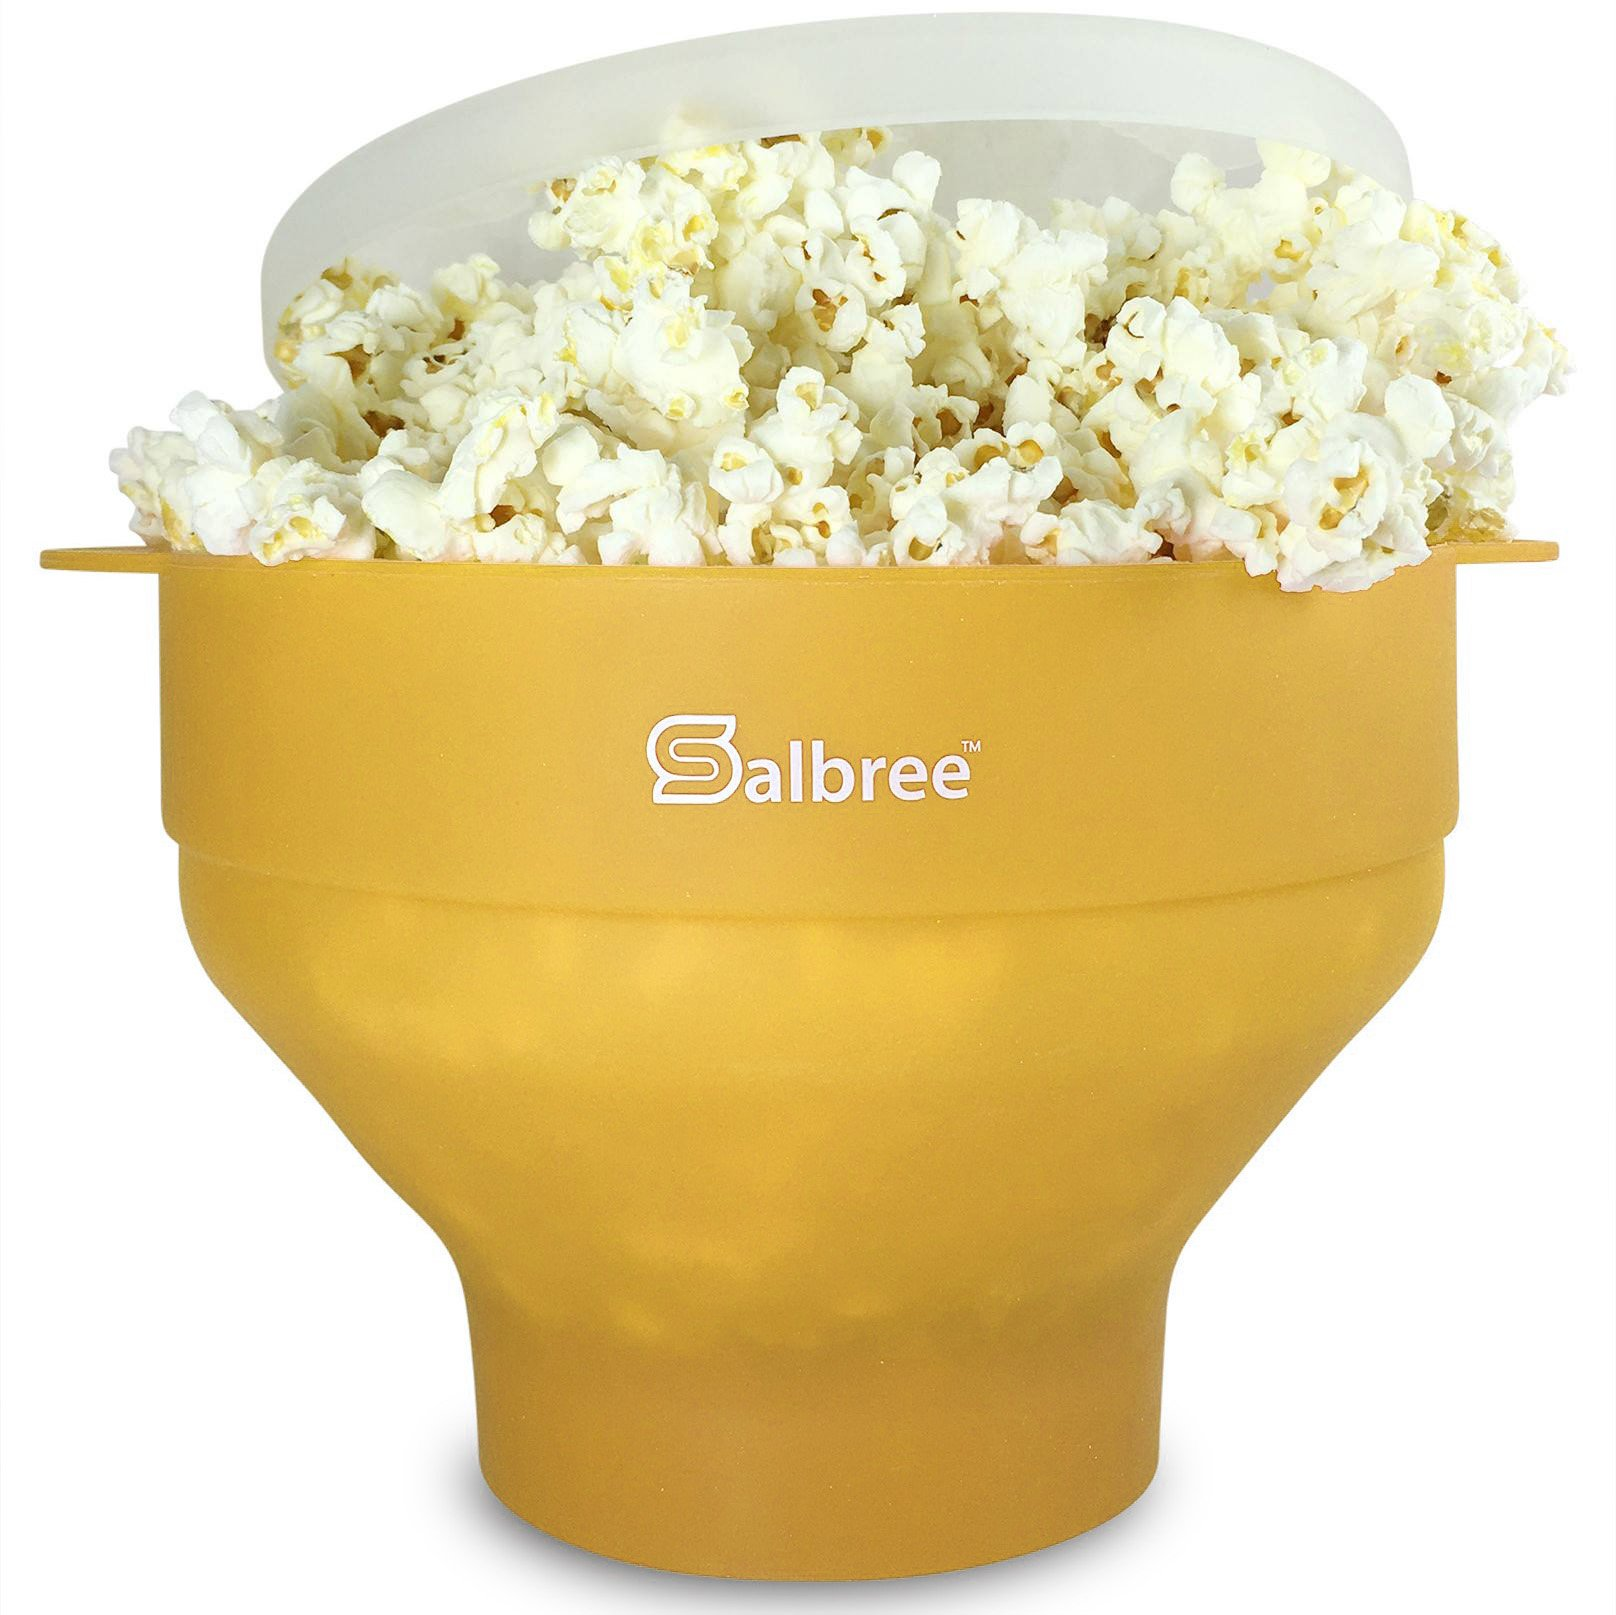 The Original Salbree Microwave Popcorn Popper, Silicone Popcorn Maker, Collapsible Bowl BPA Free - 14 Colors Available (Yellow)